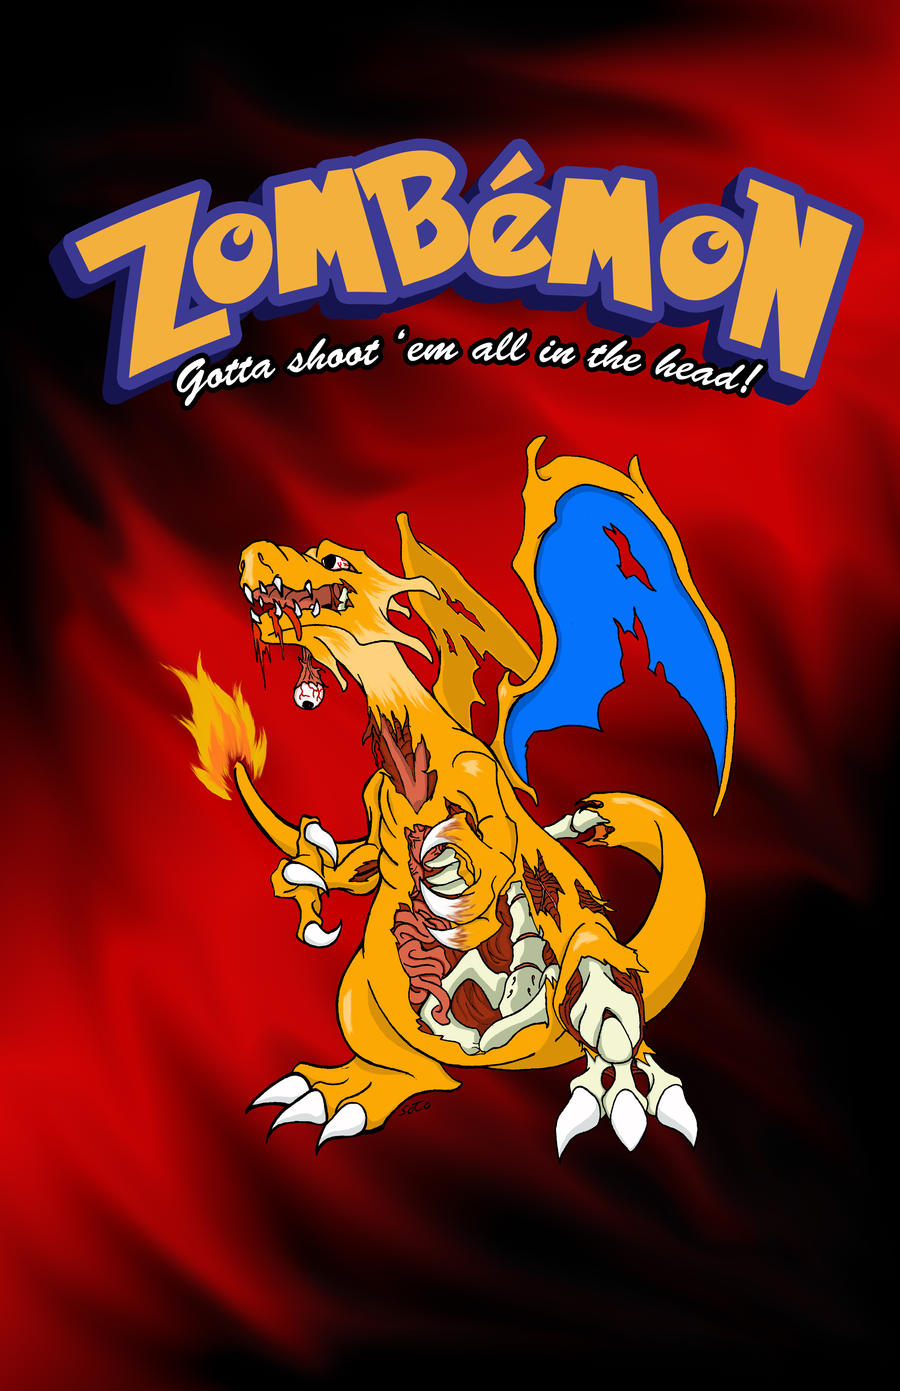 Zombie Charizard By Sotoman On DeviantArt